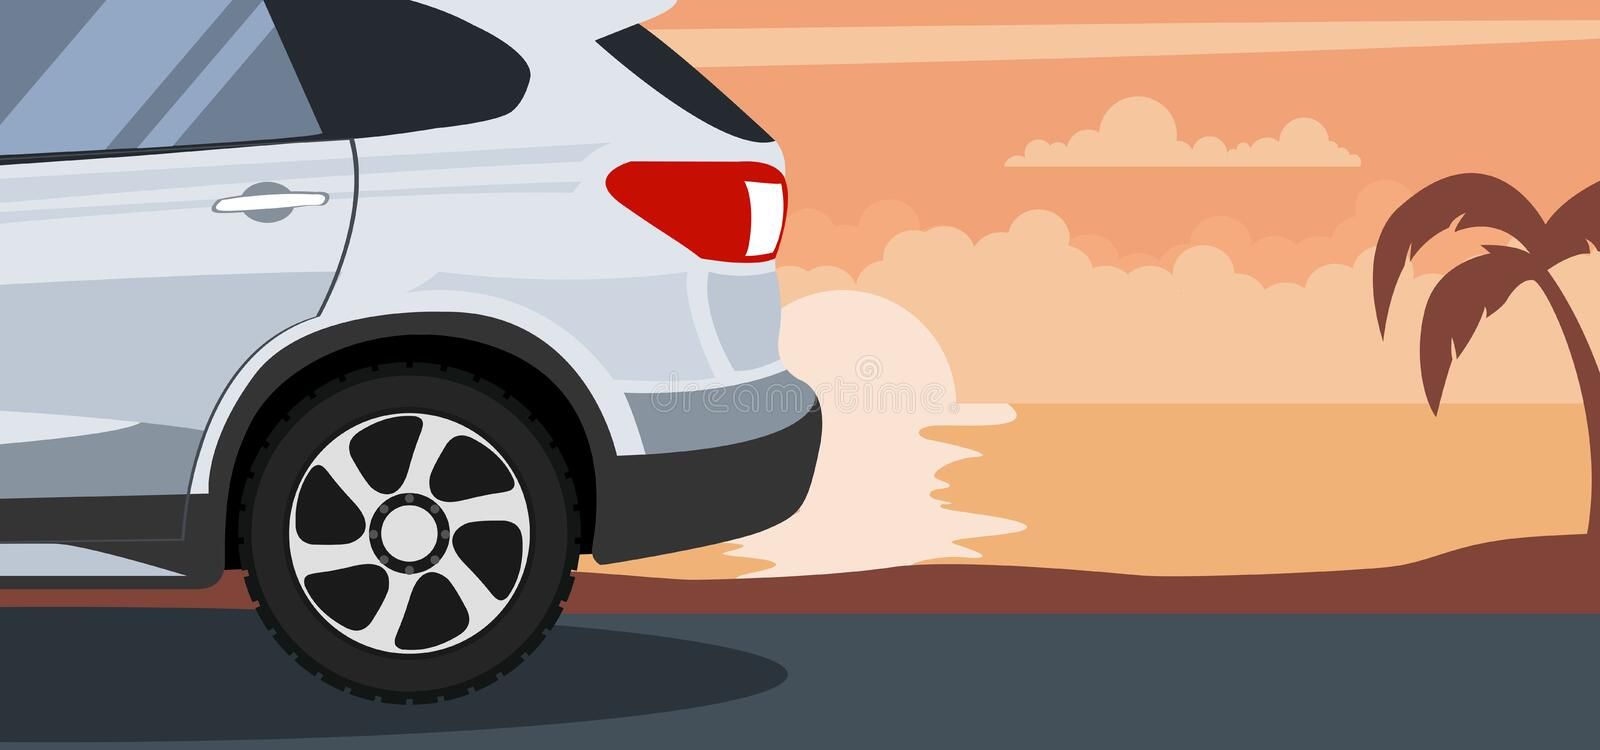 Background of modern van at a sunset on the beach royalty free illustration